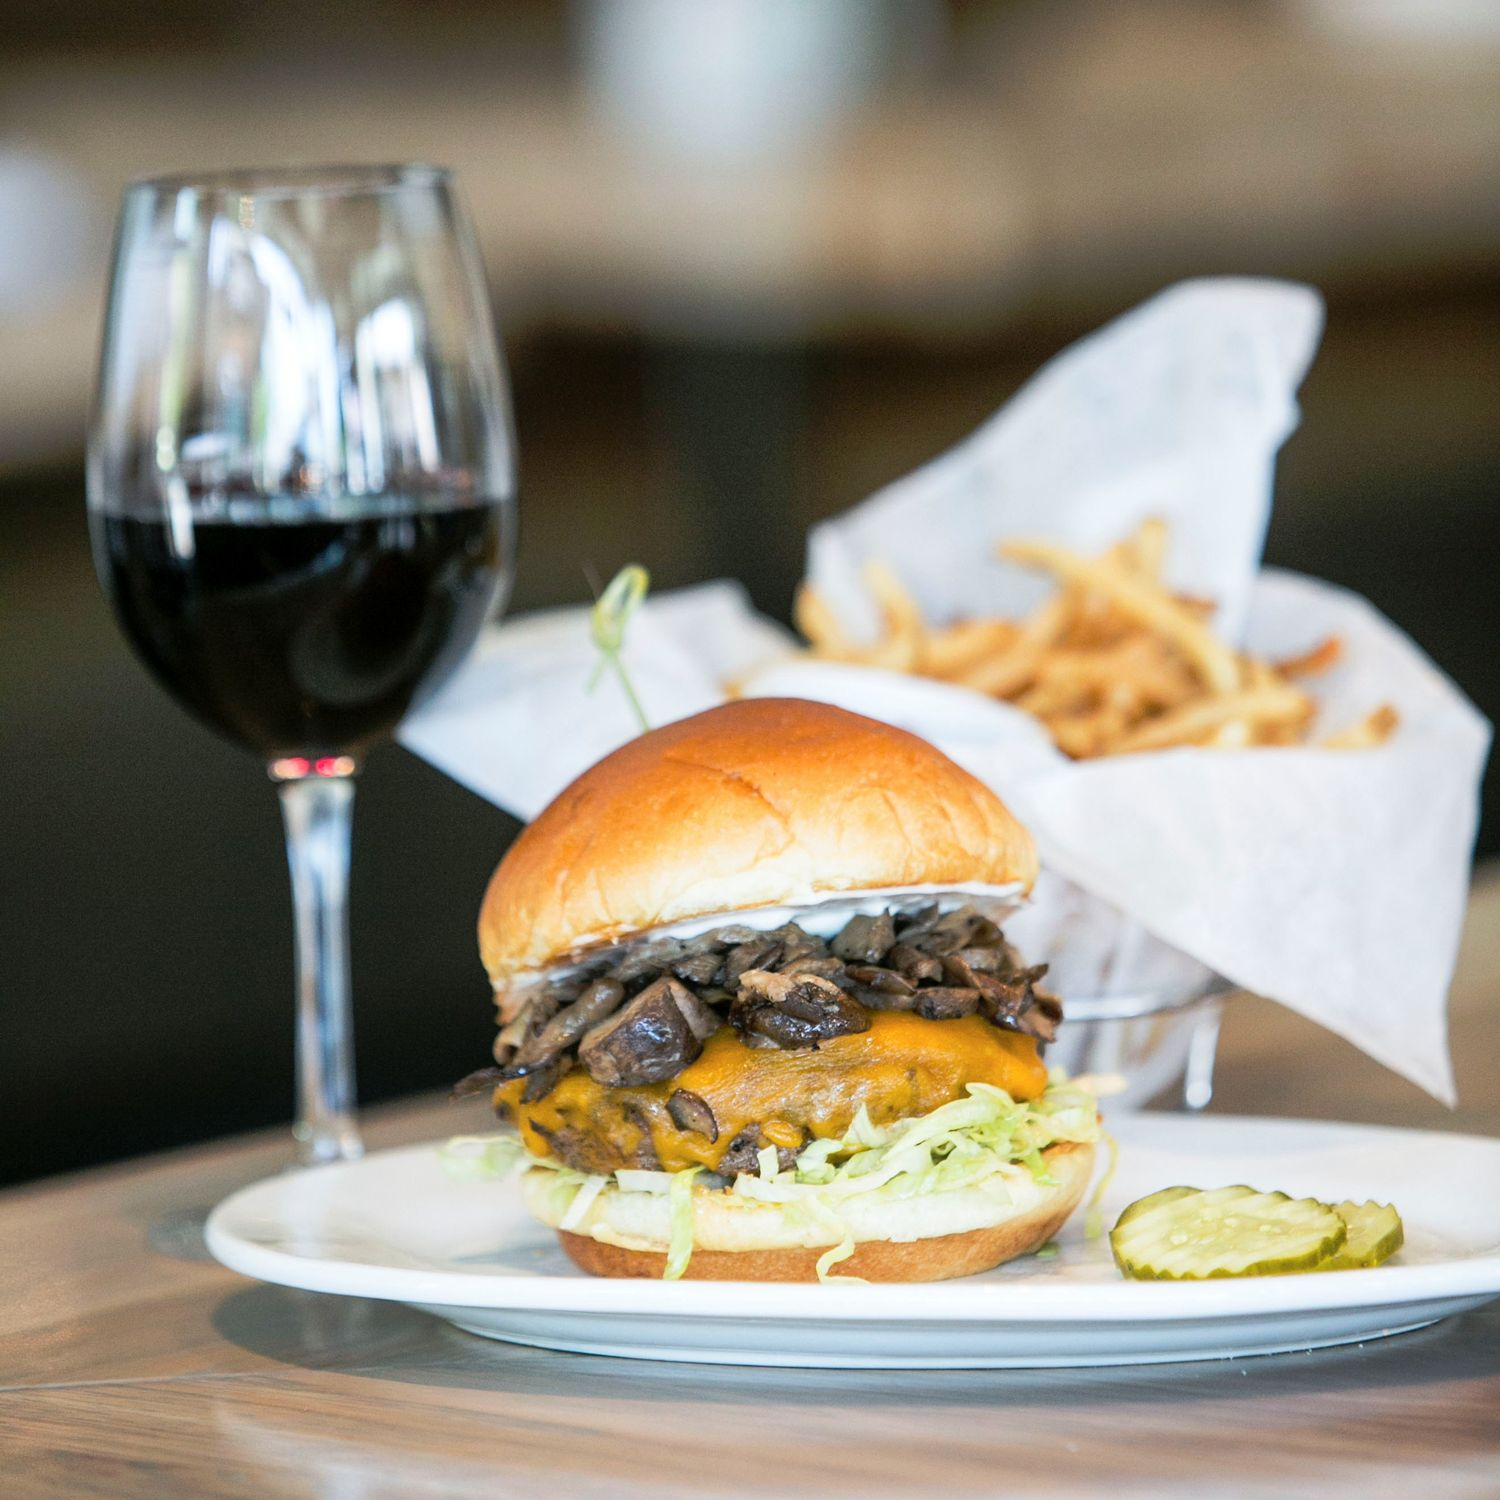 New Zinburger Wine & Burger Bar in Edison To Host Job Fair June 2 - June 13